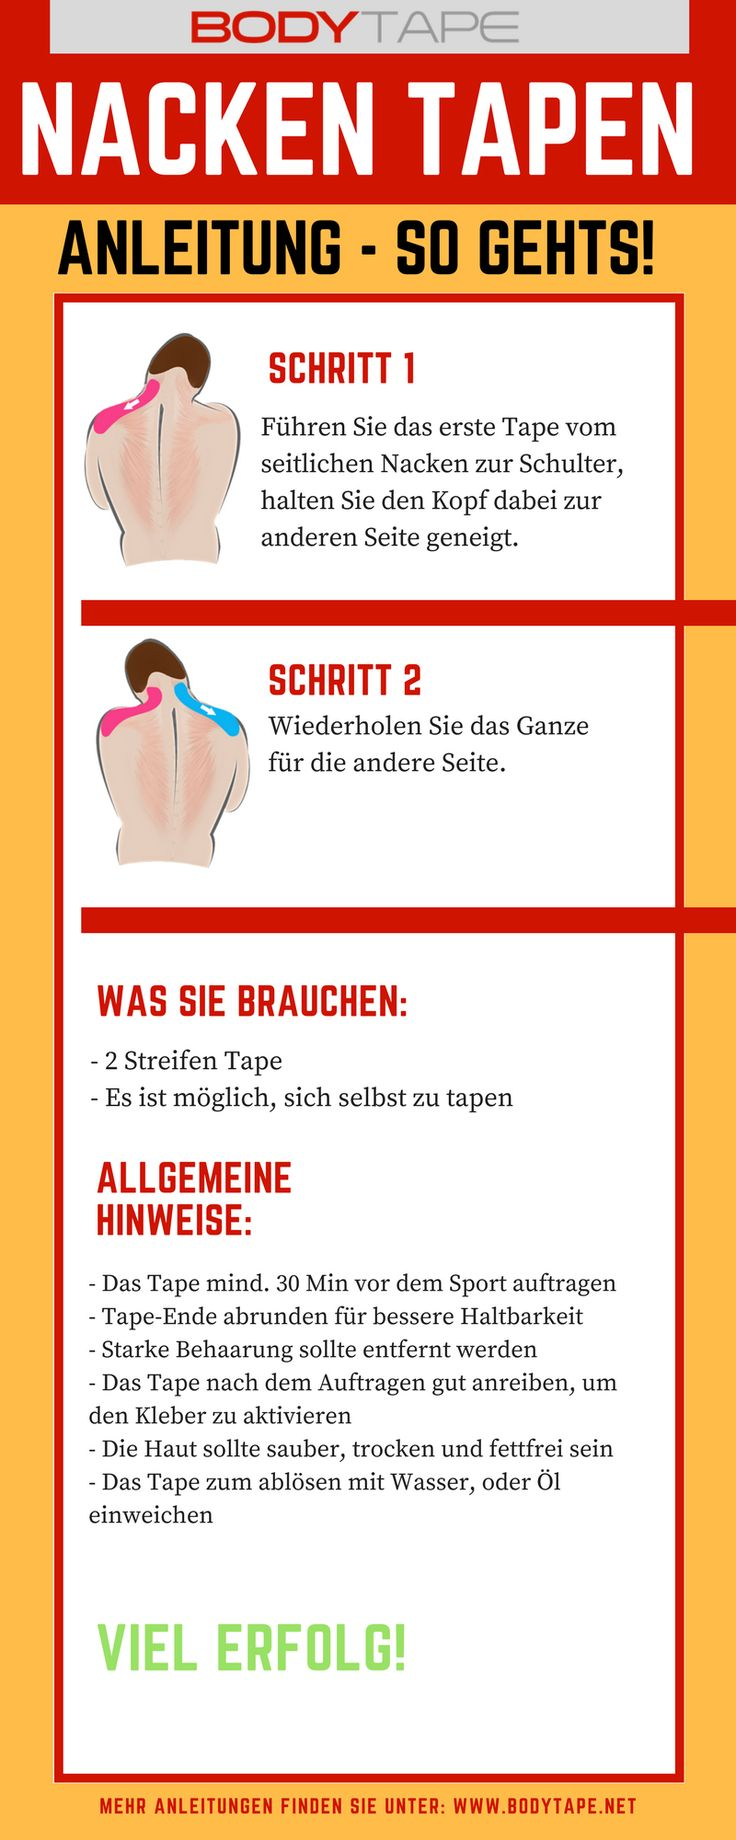 Nacken Tapen Anleitung - Kinesiologie Tape Anleitung zum Tapen vom Nacken. Mehr Anleitungen unter: www.taping-guide.com